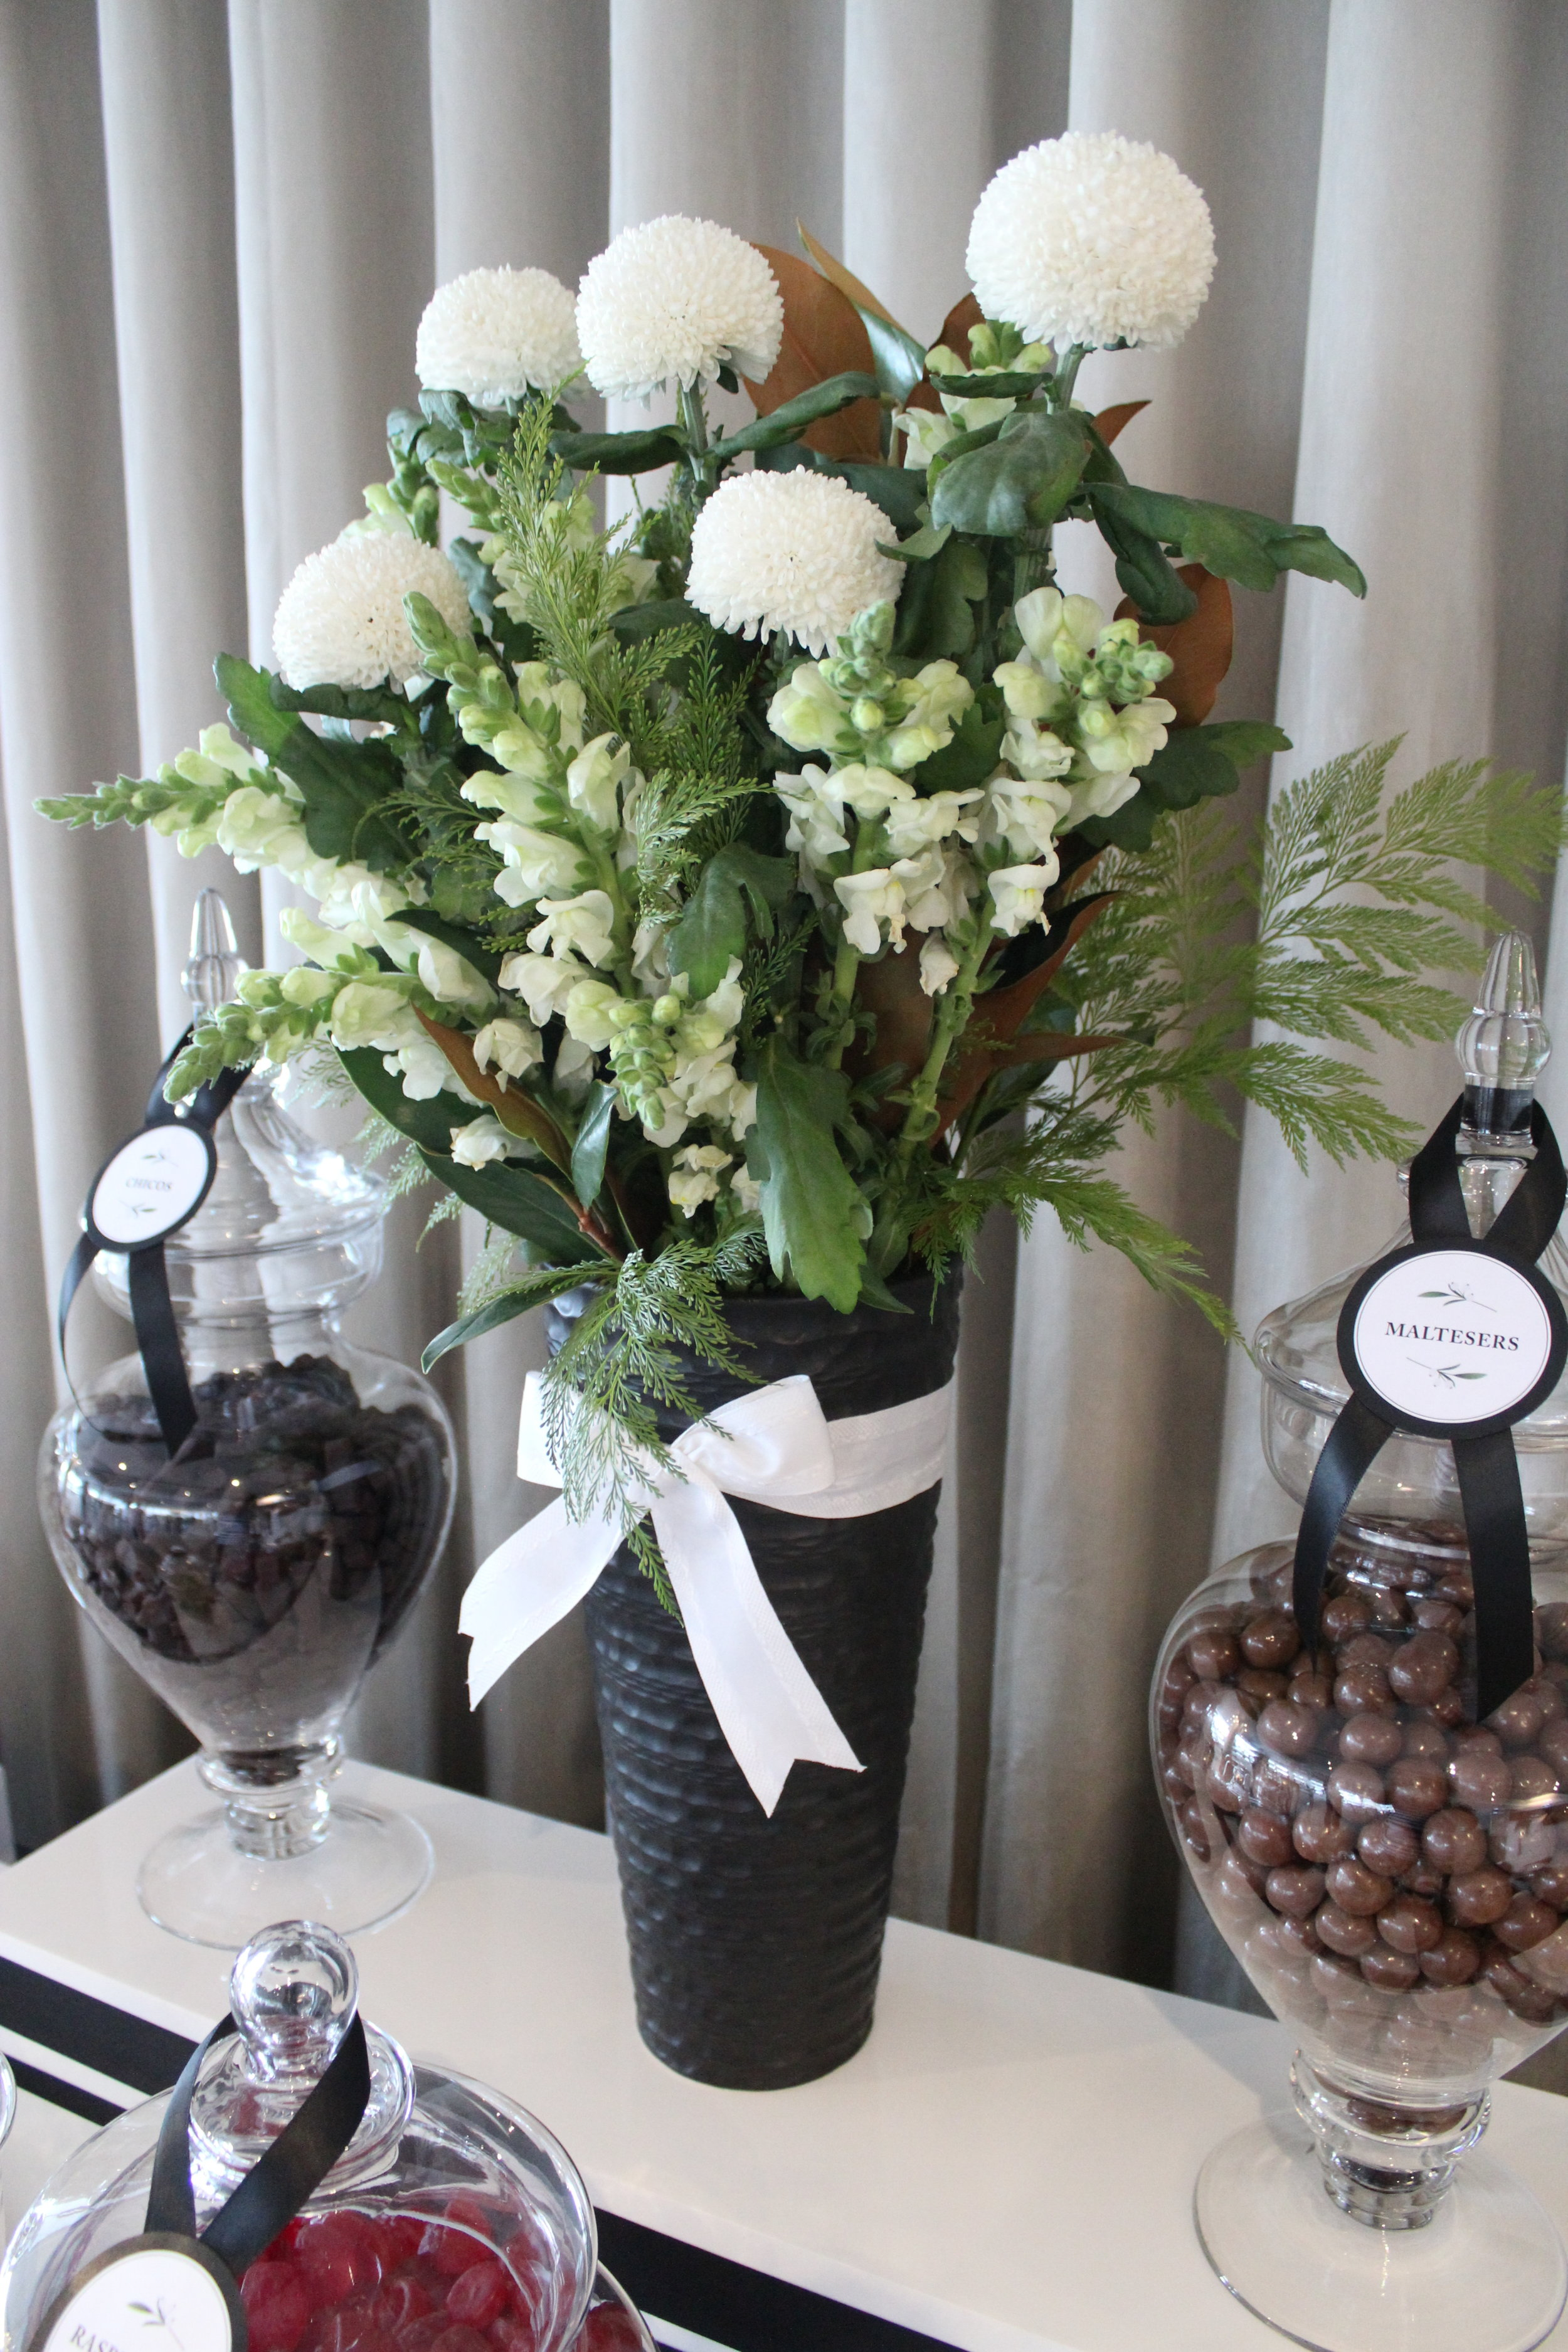 Black White Lolly Buffet Blackbird 7/10 - Chicos & Maltesers